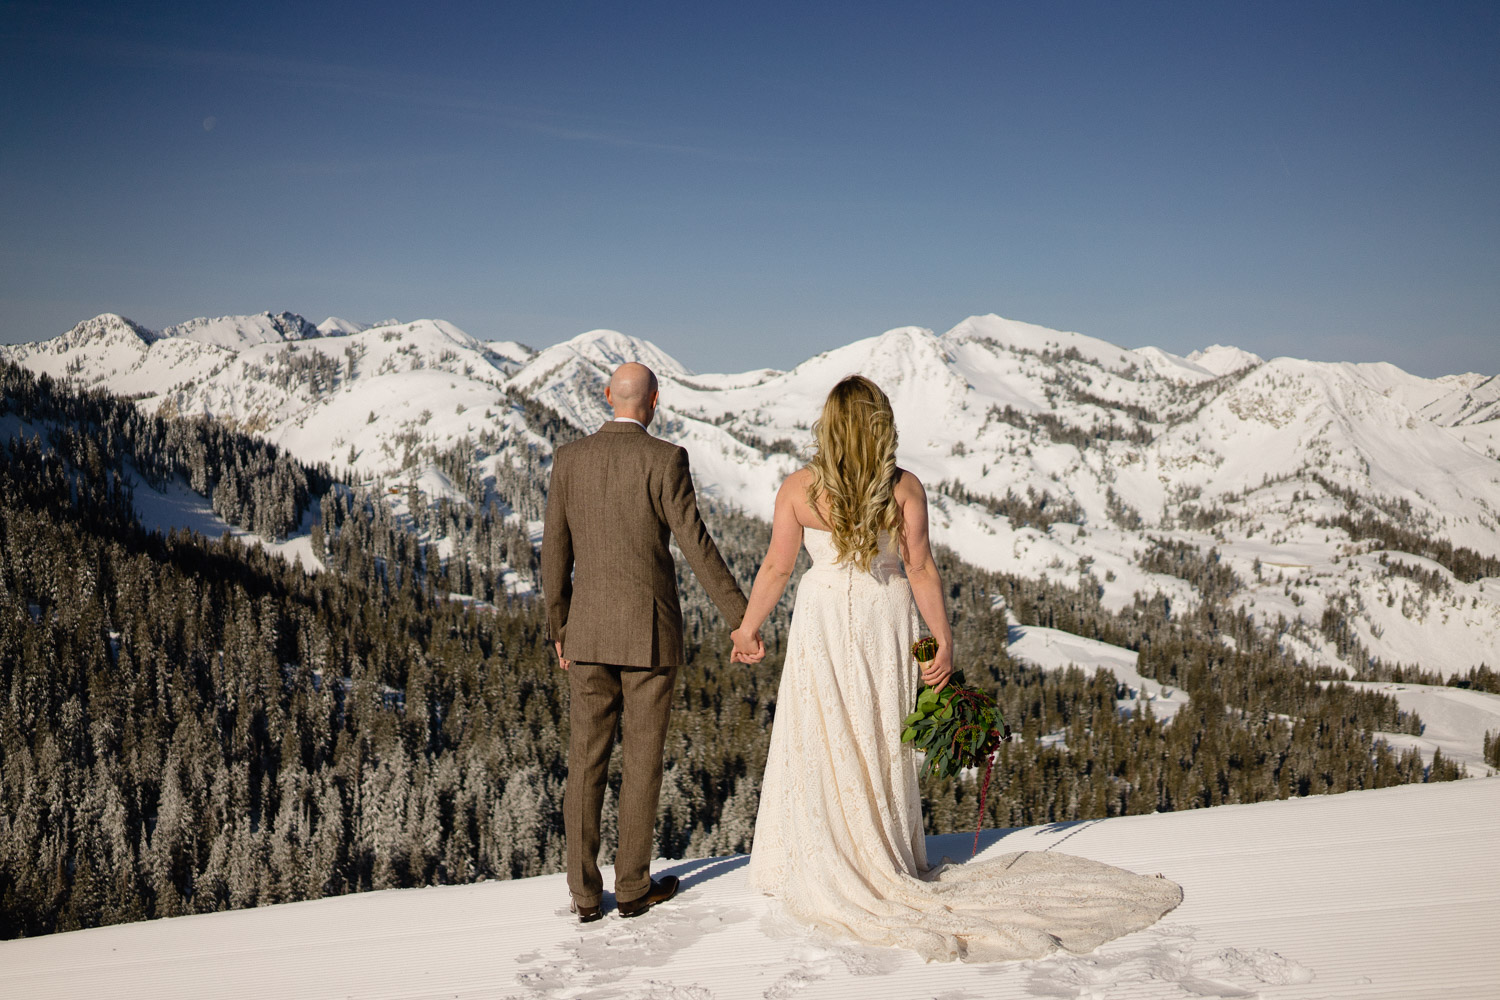 bride and groom hold hands on snowy mountain